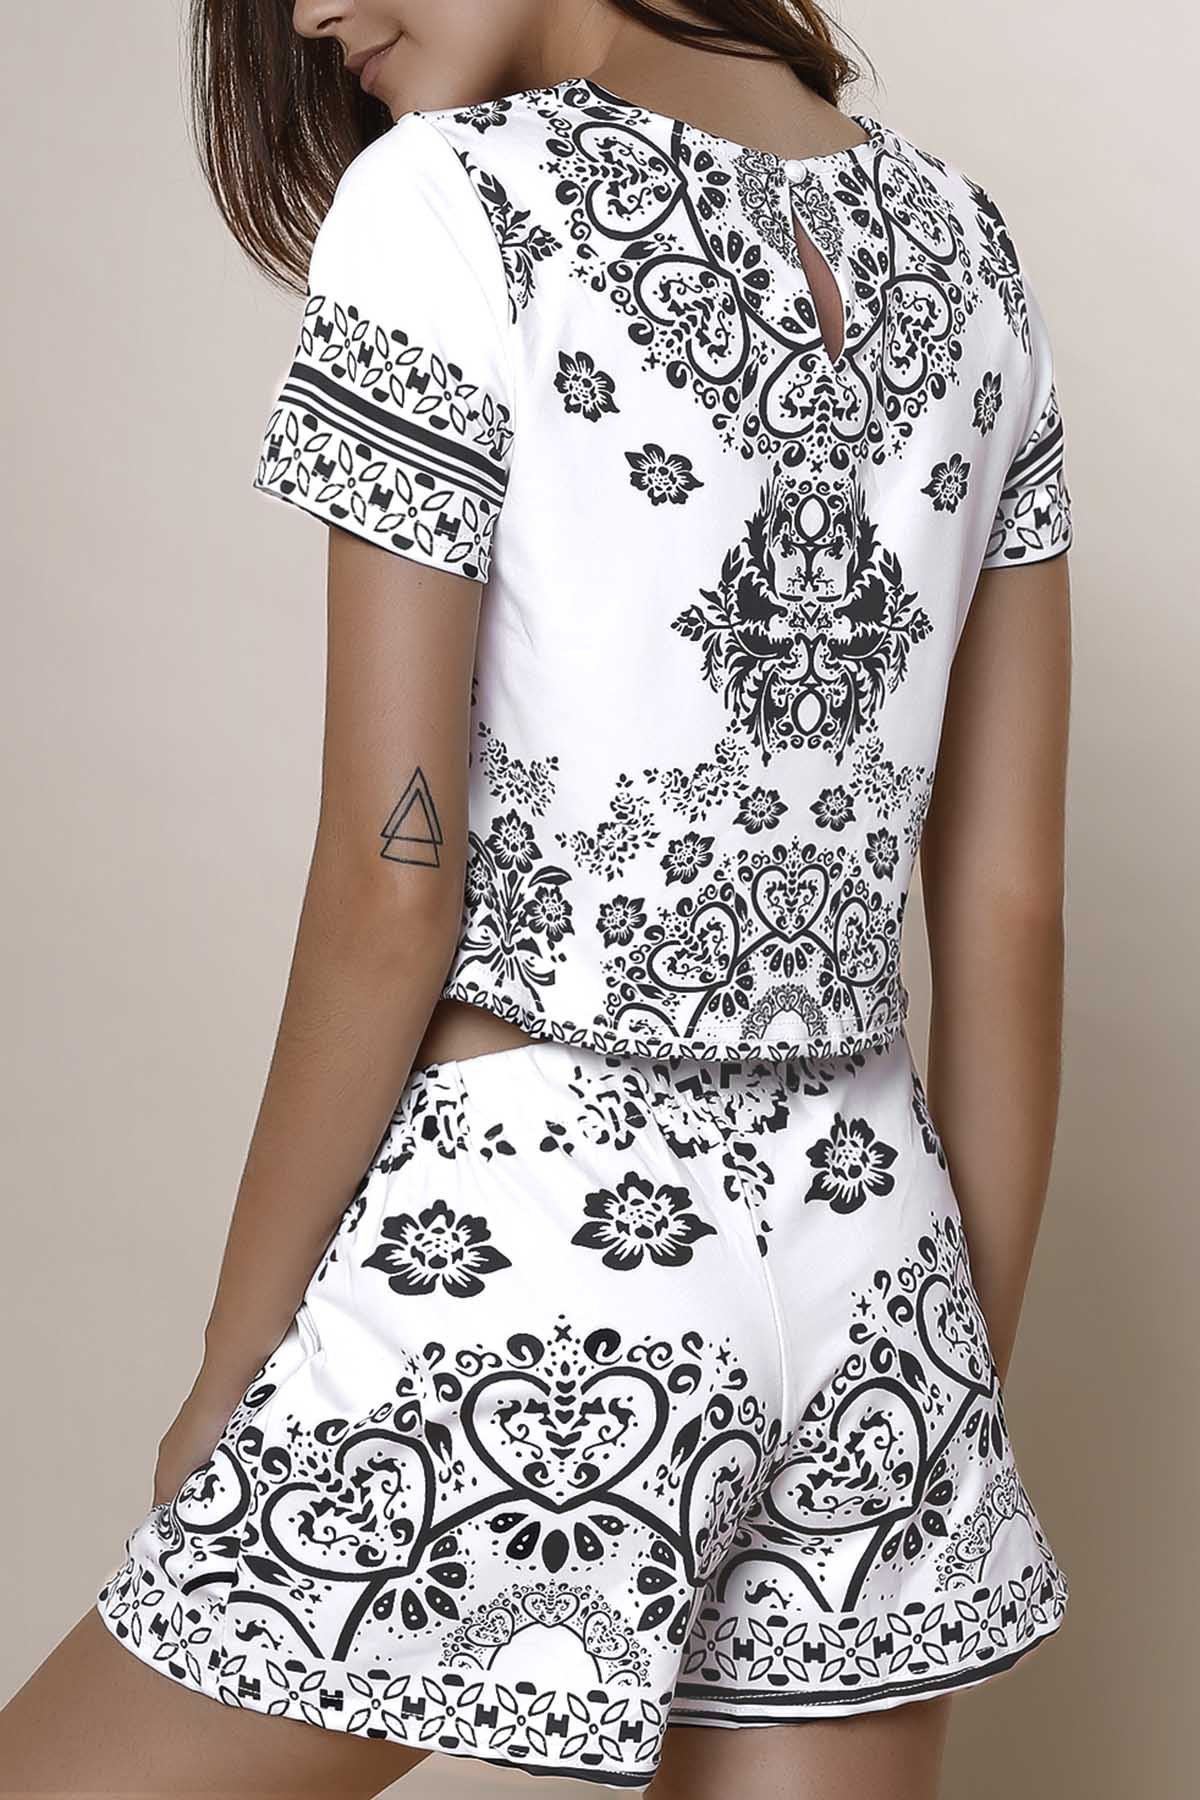 Round Neck Short Sleeve Crop Top + Porcelain Print High-Waisted Shorts Twinset